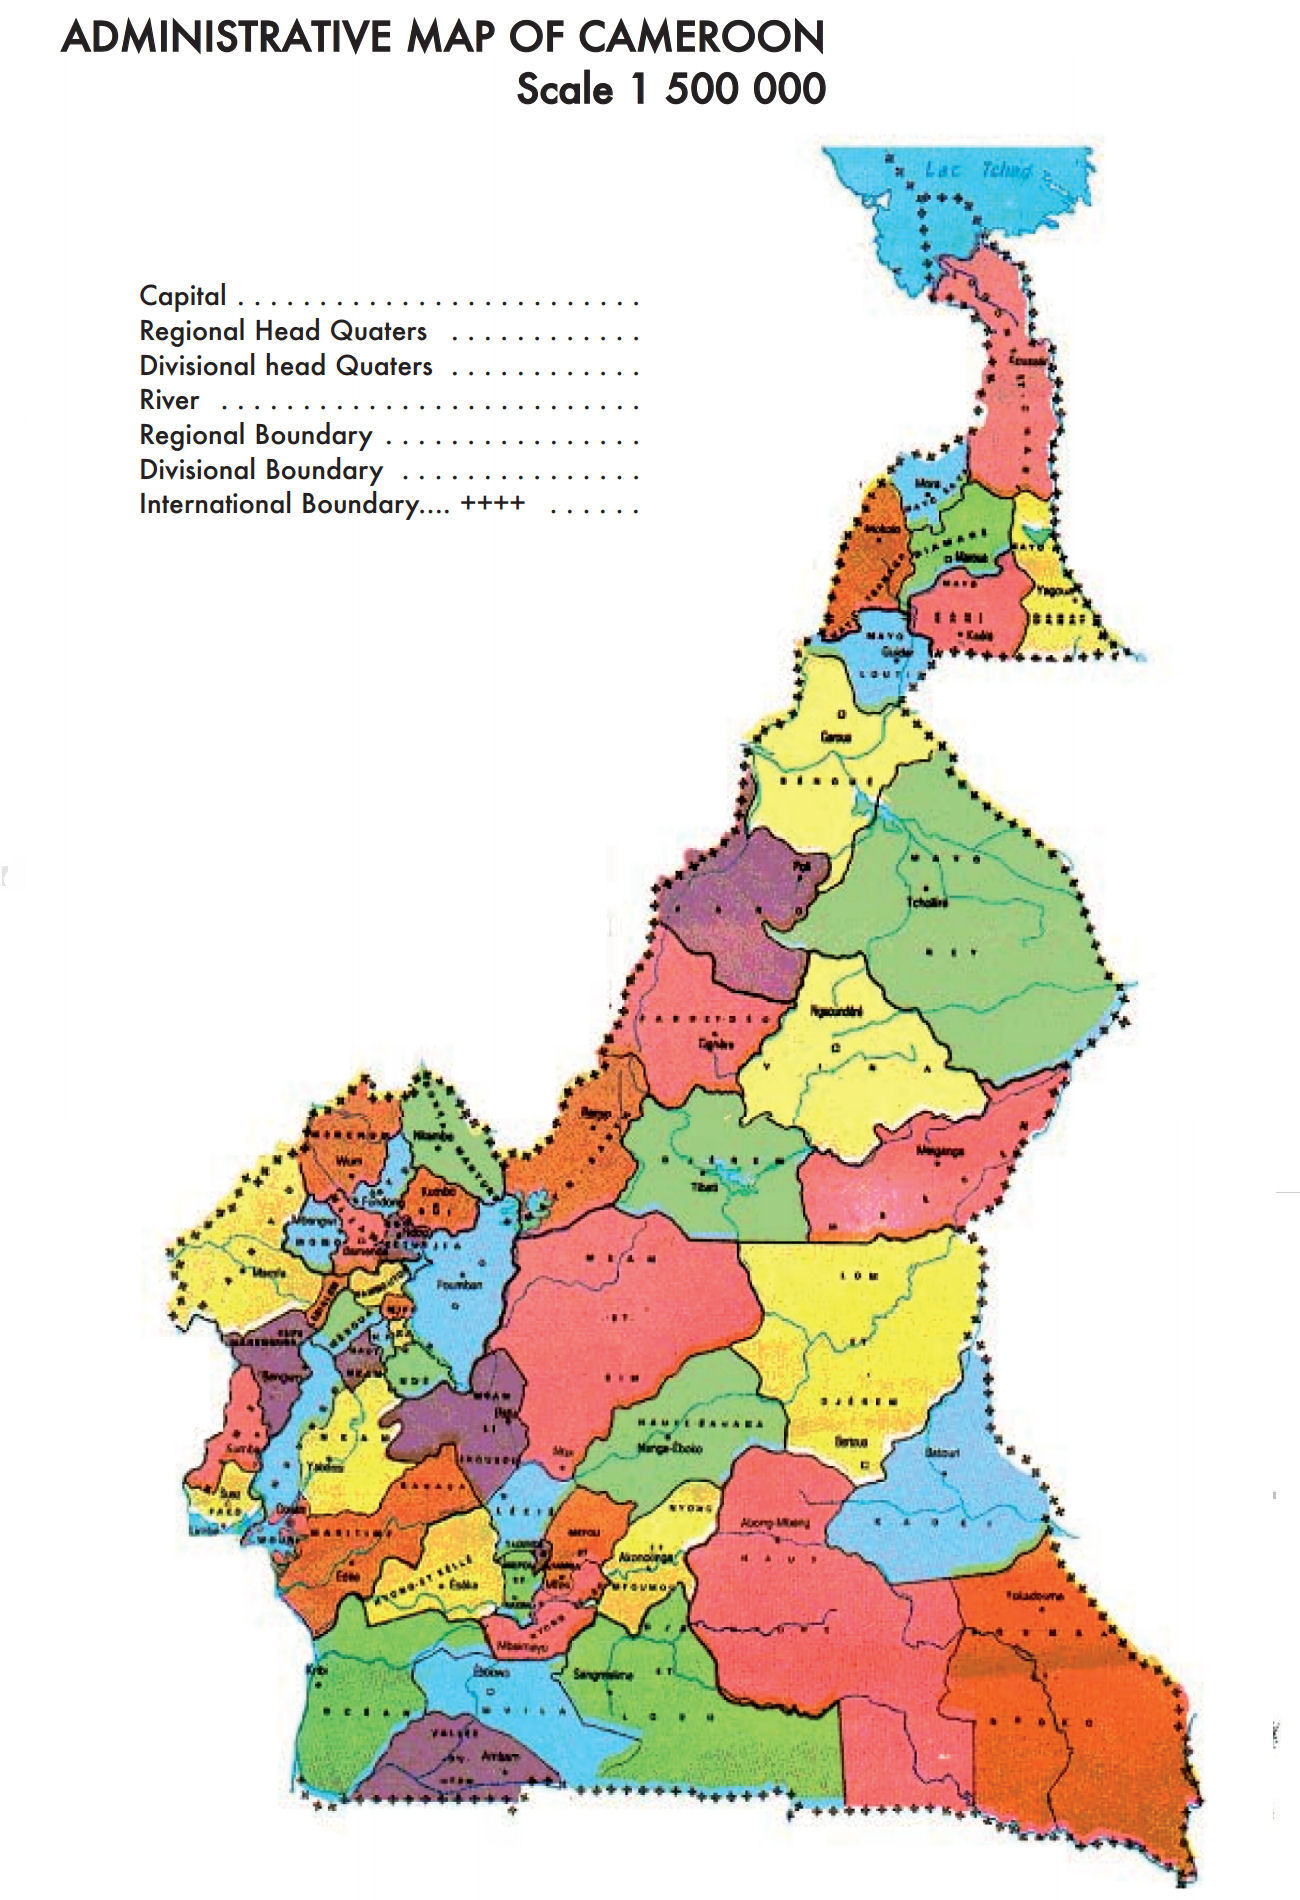 Cameroon Maps - Cameroon map